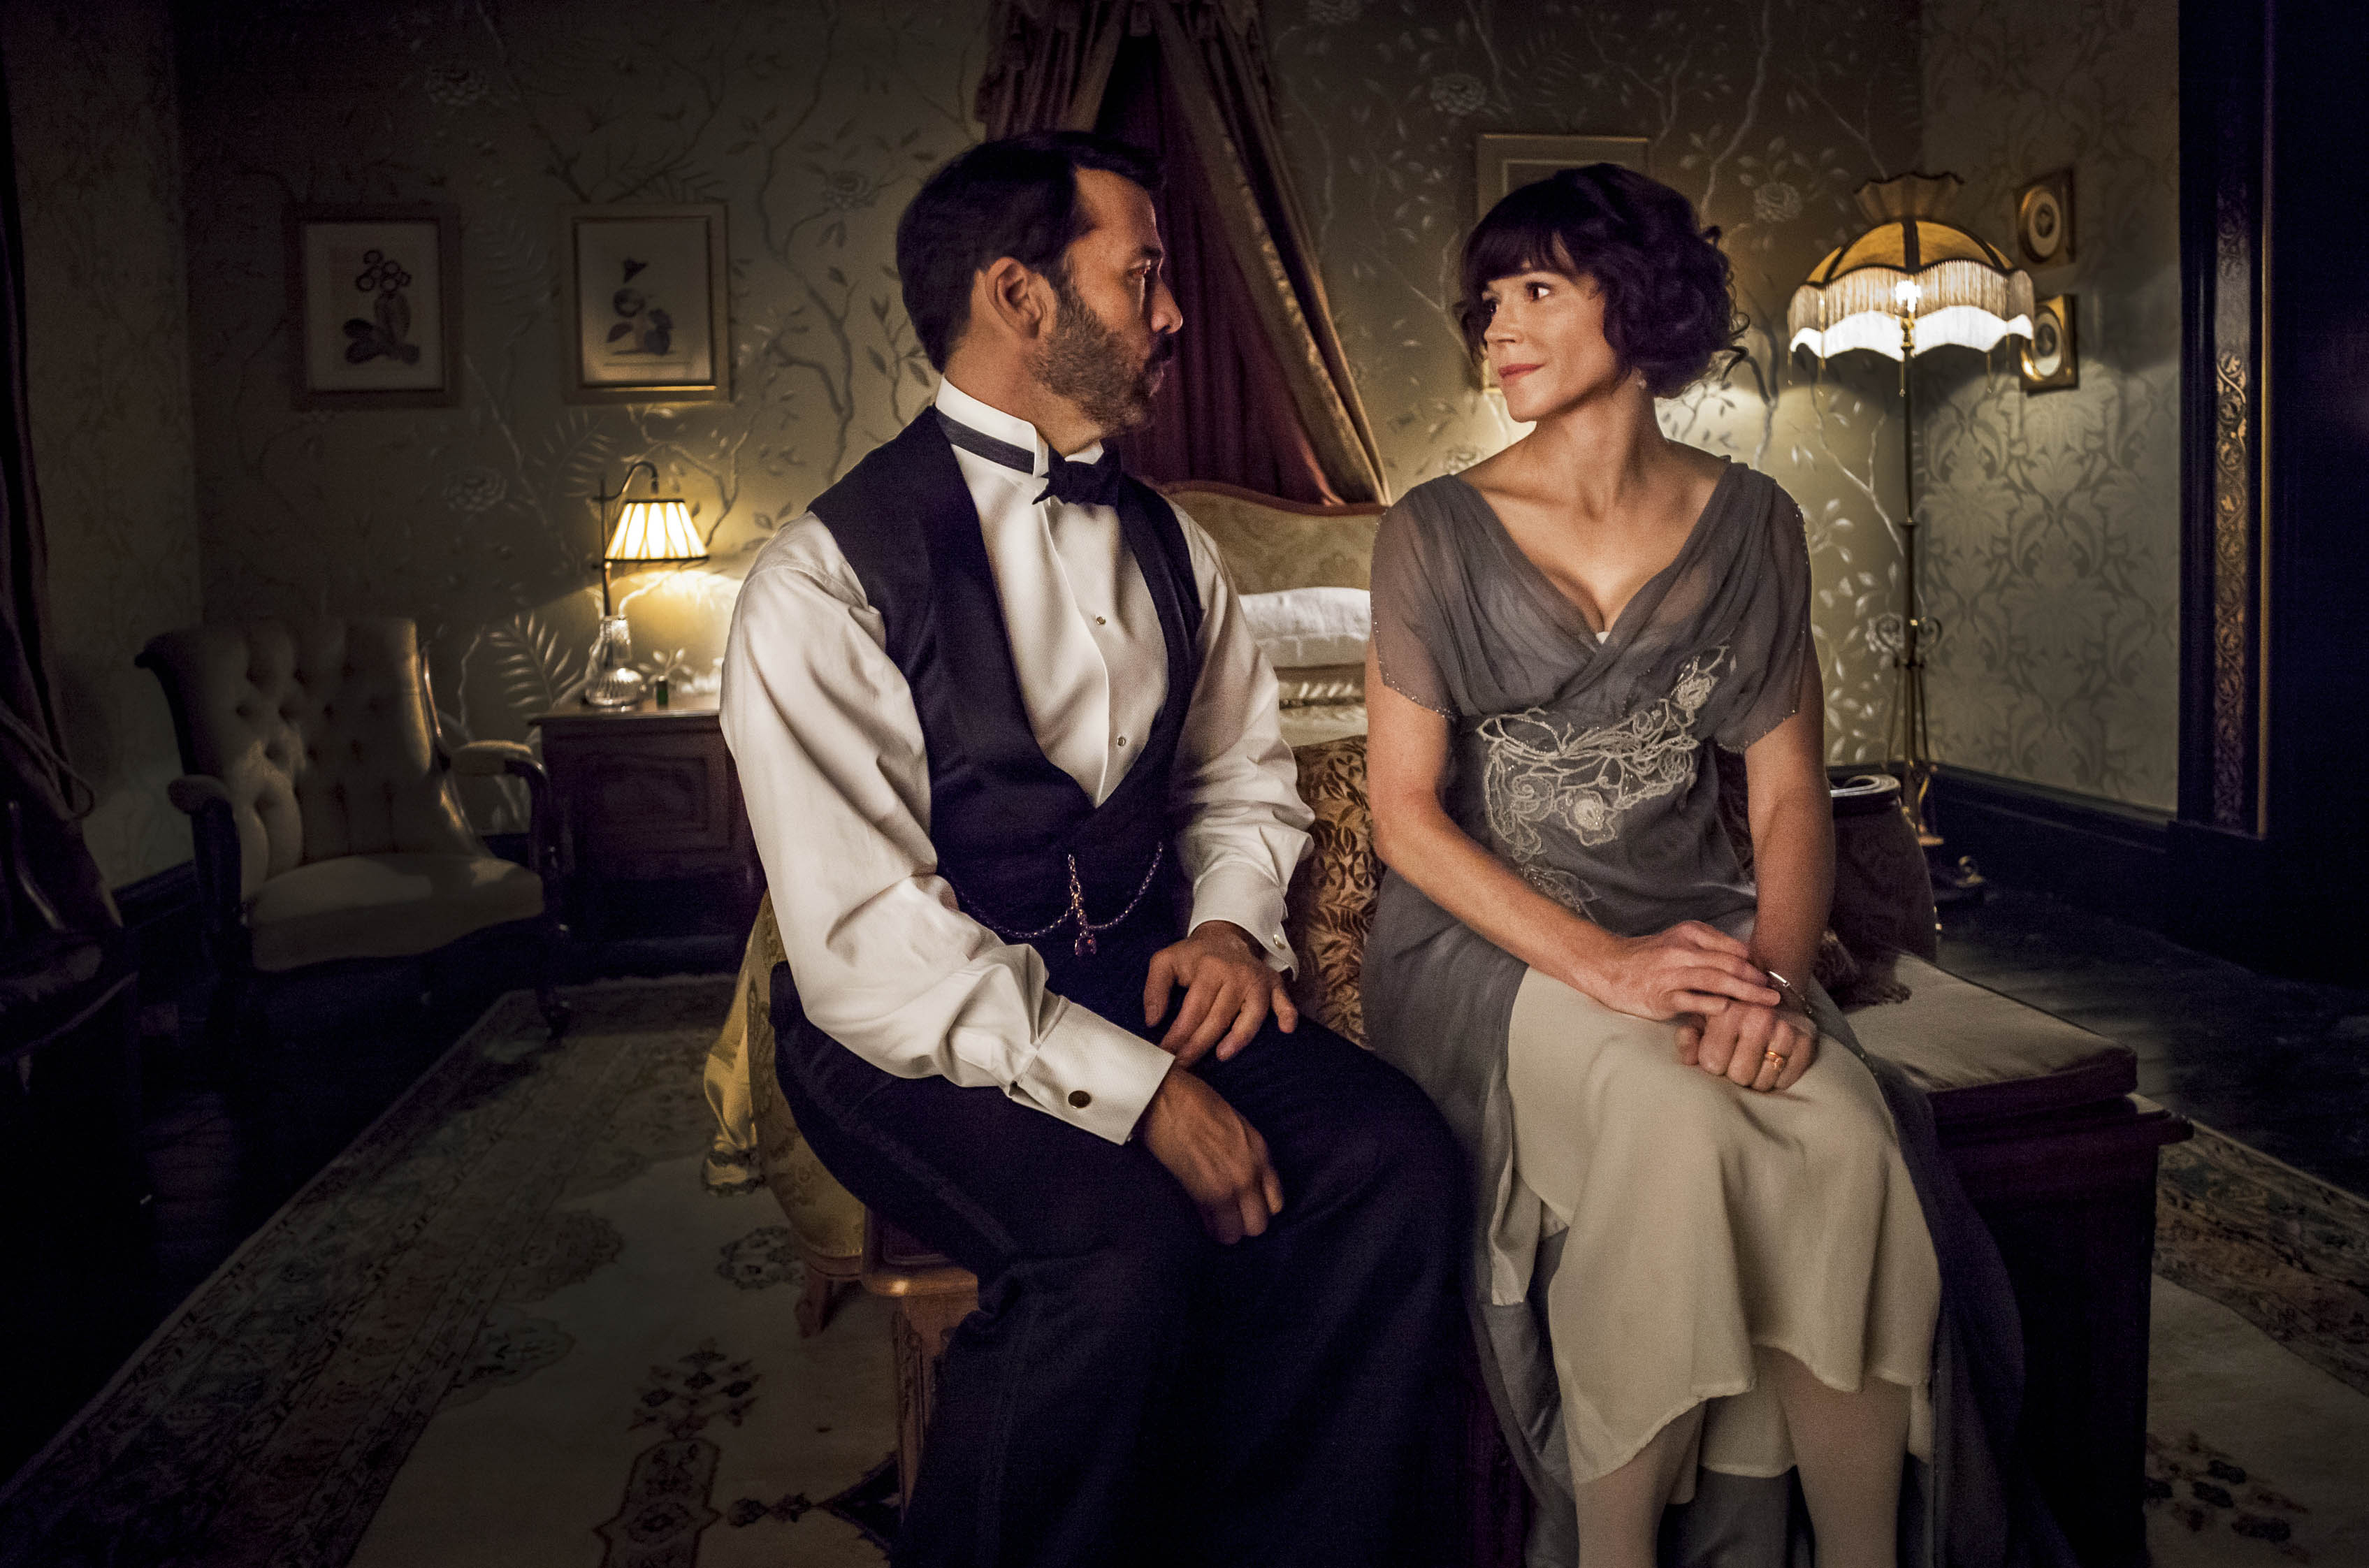 Mr Selfridge series 2 episode 10: cleared names, happy reunions and hankies all round